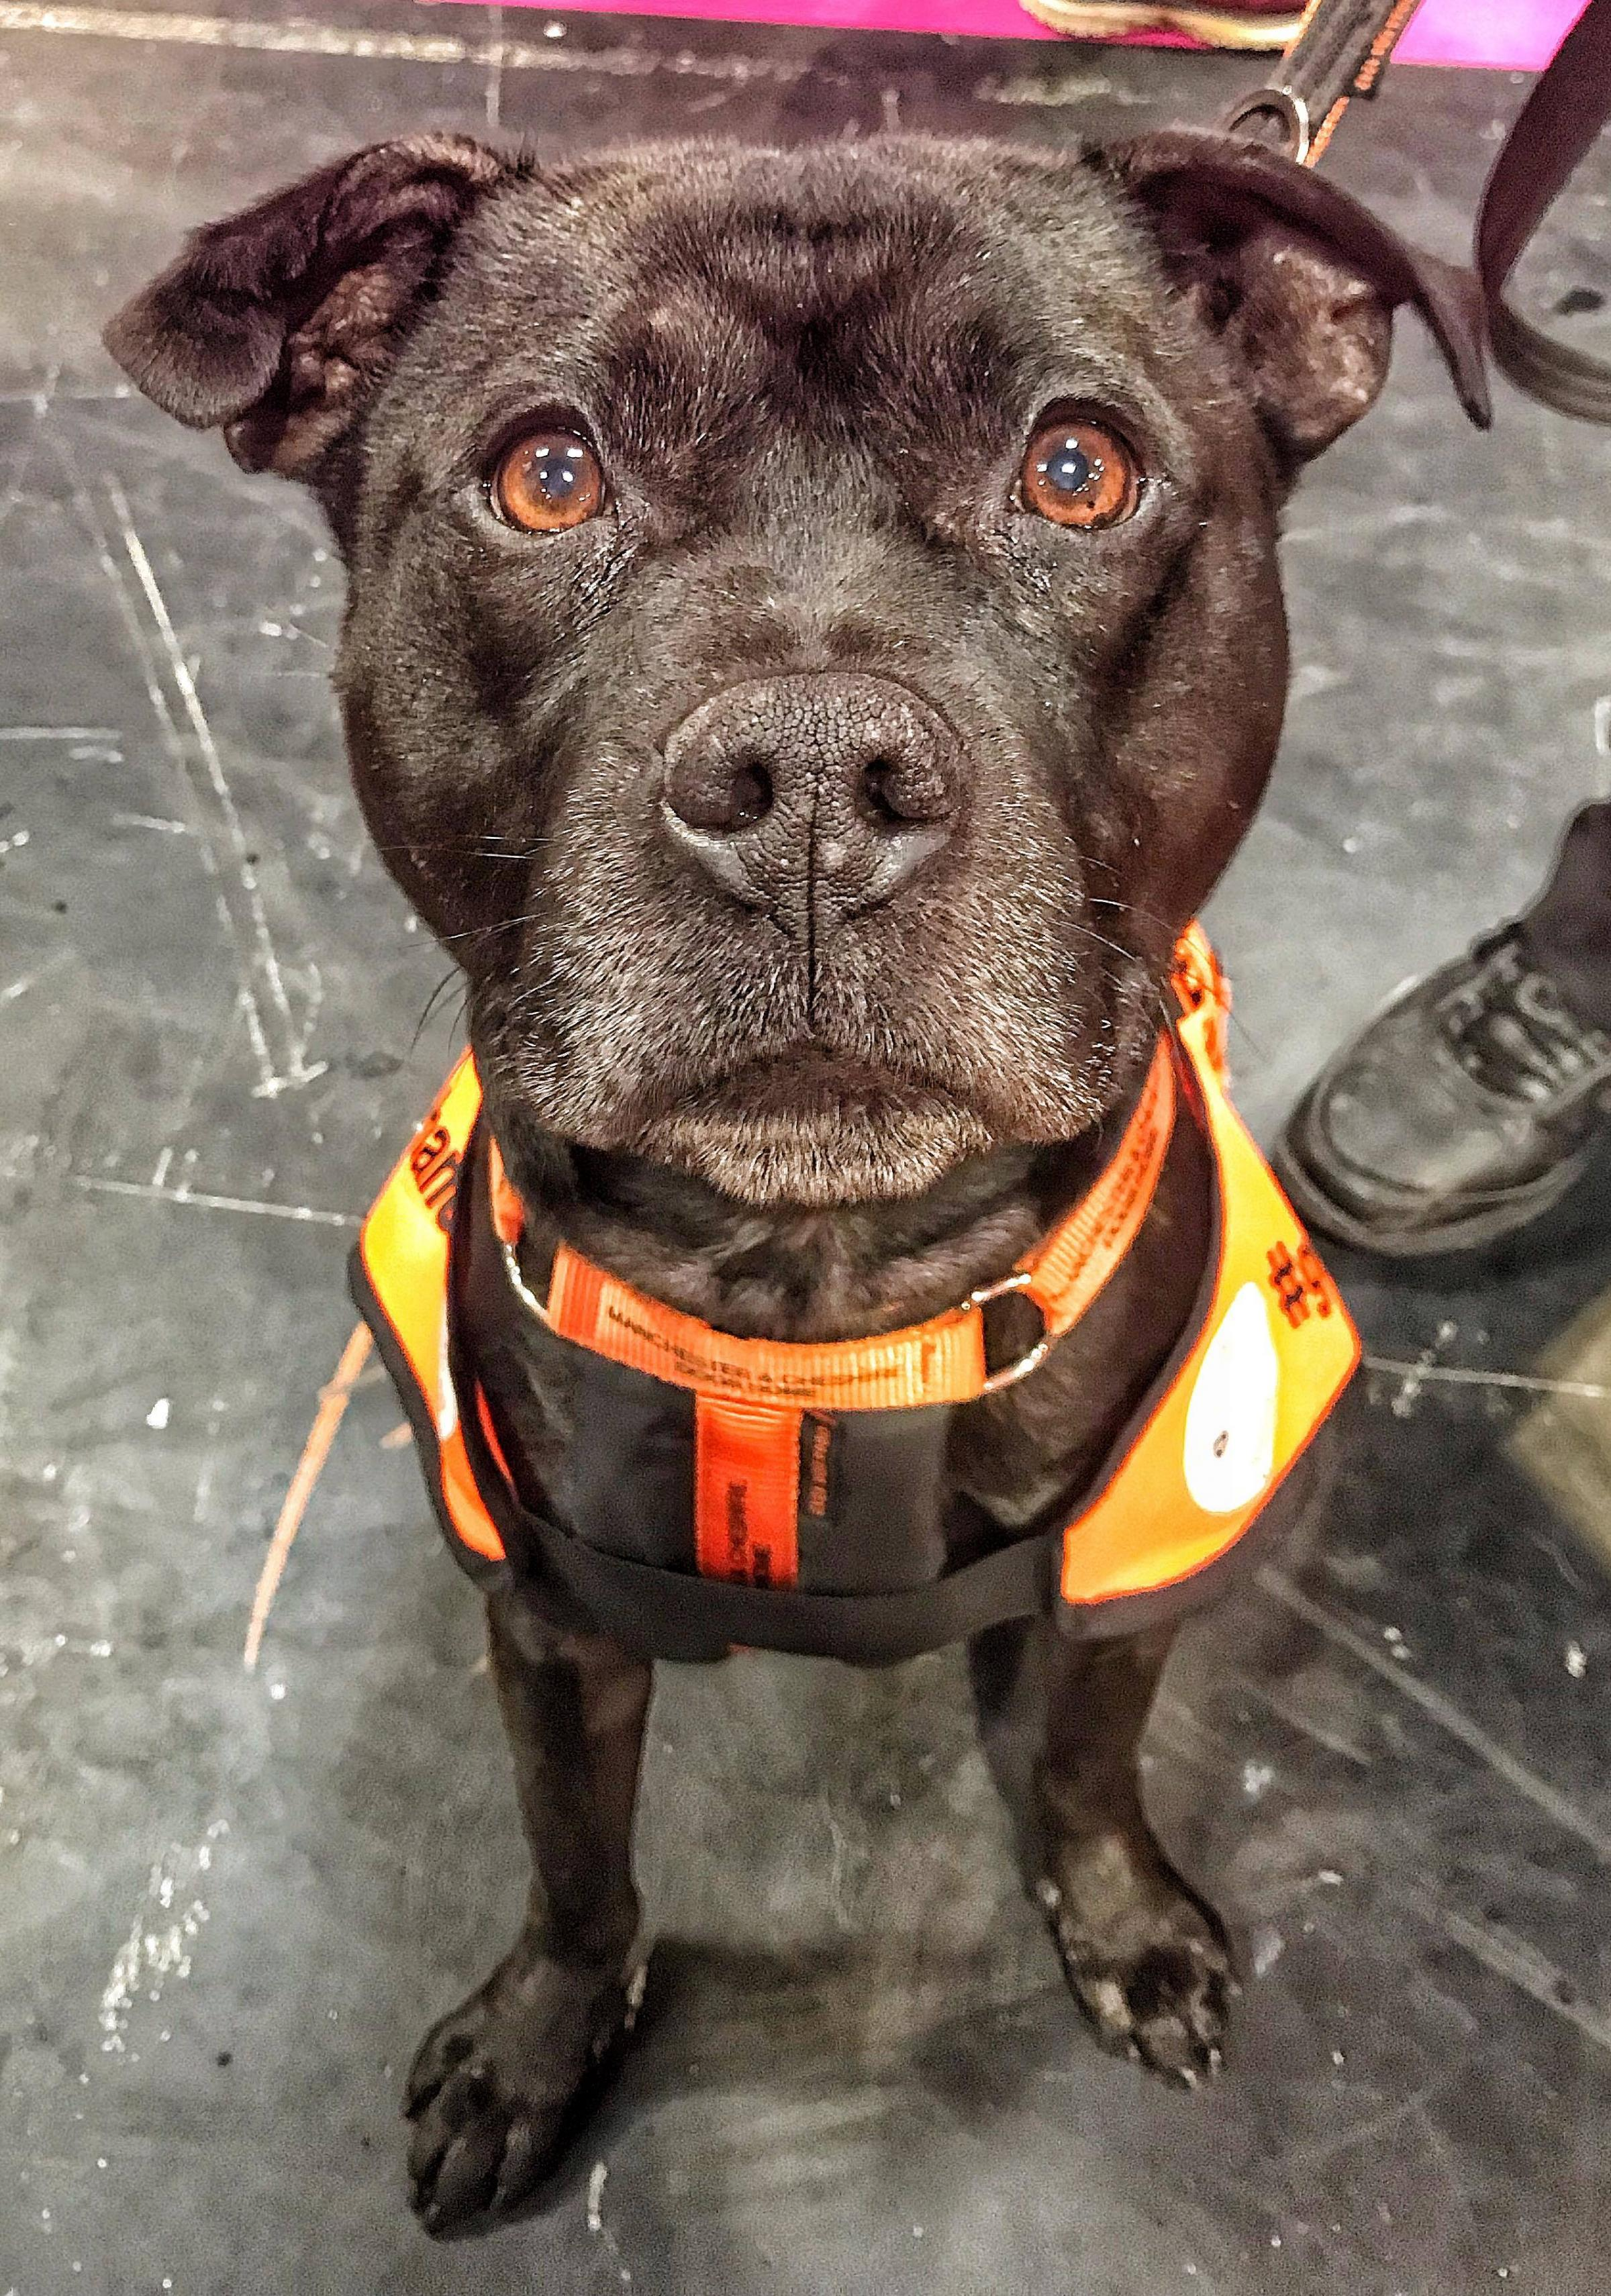 This Grappenhall rescue dog took part at Crufts